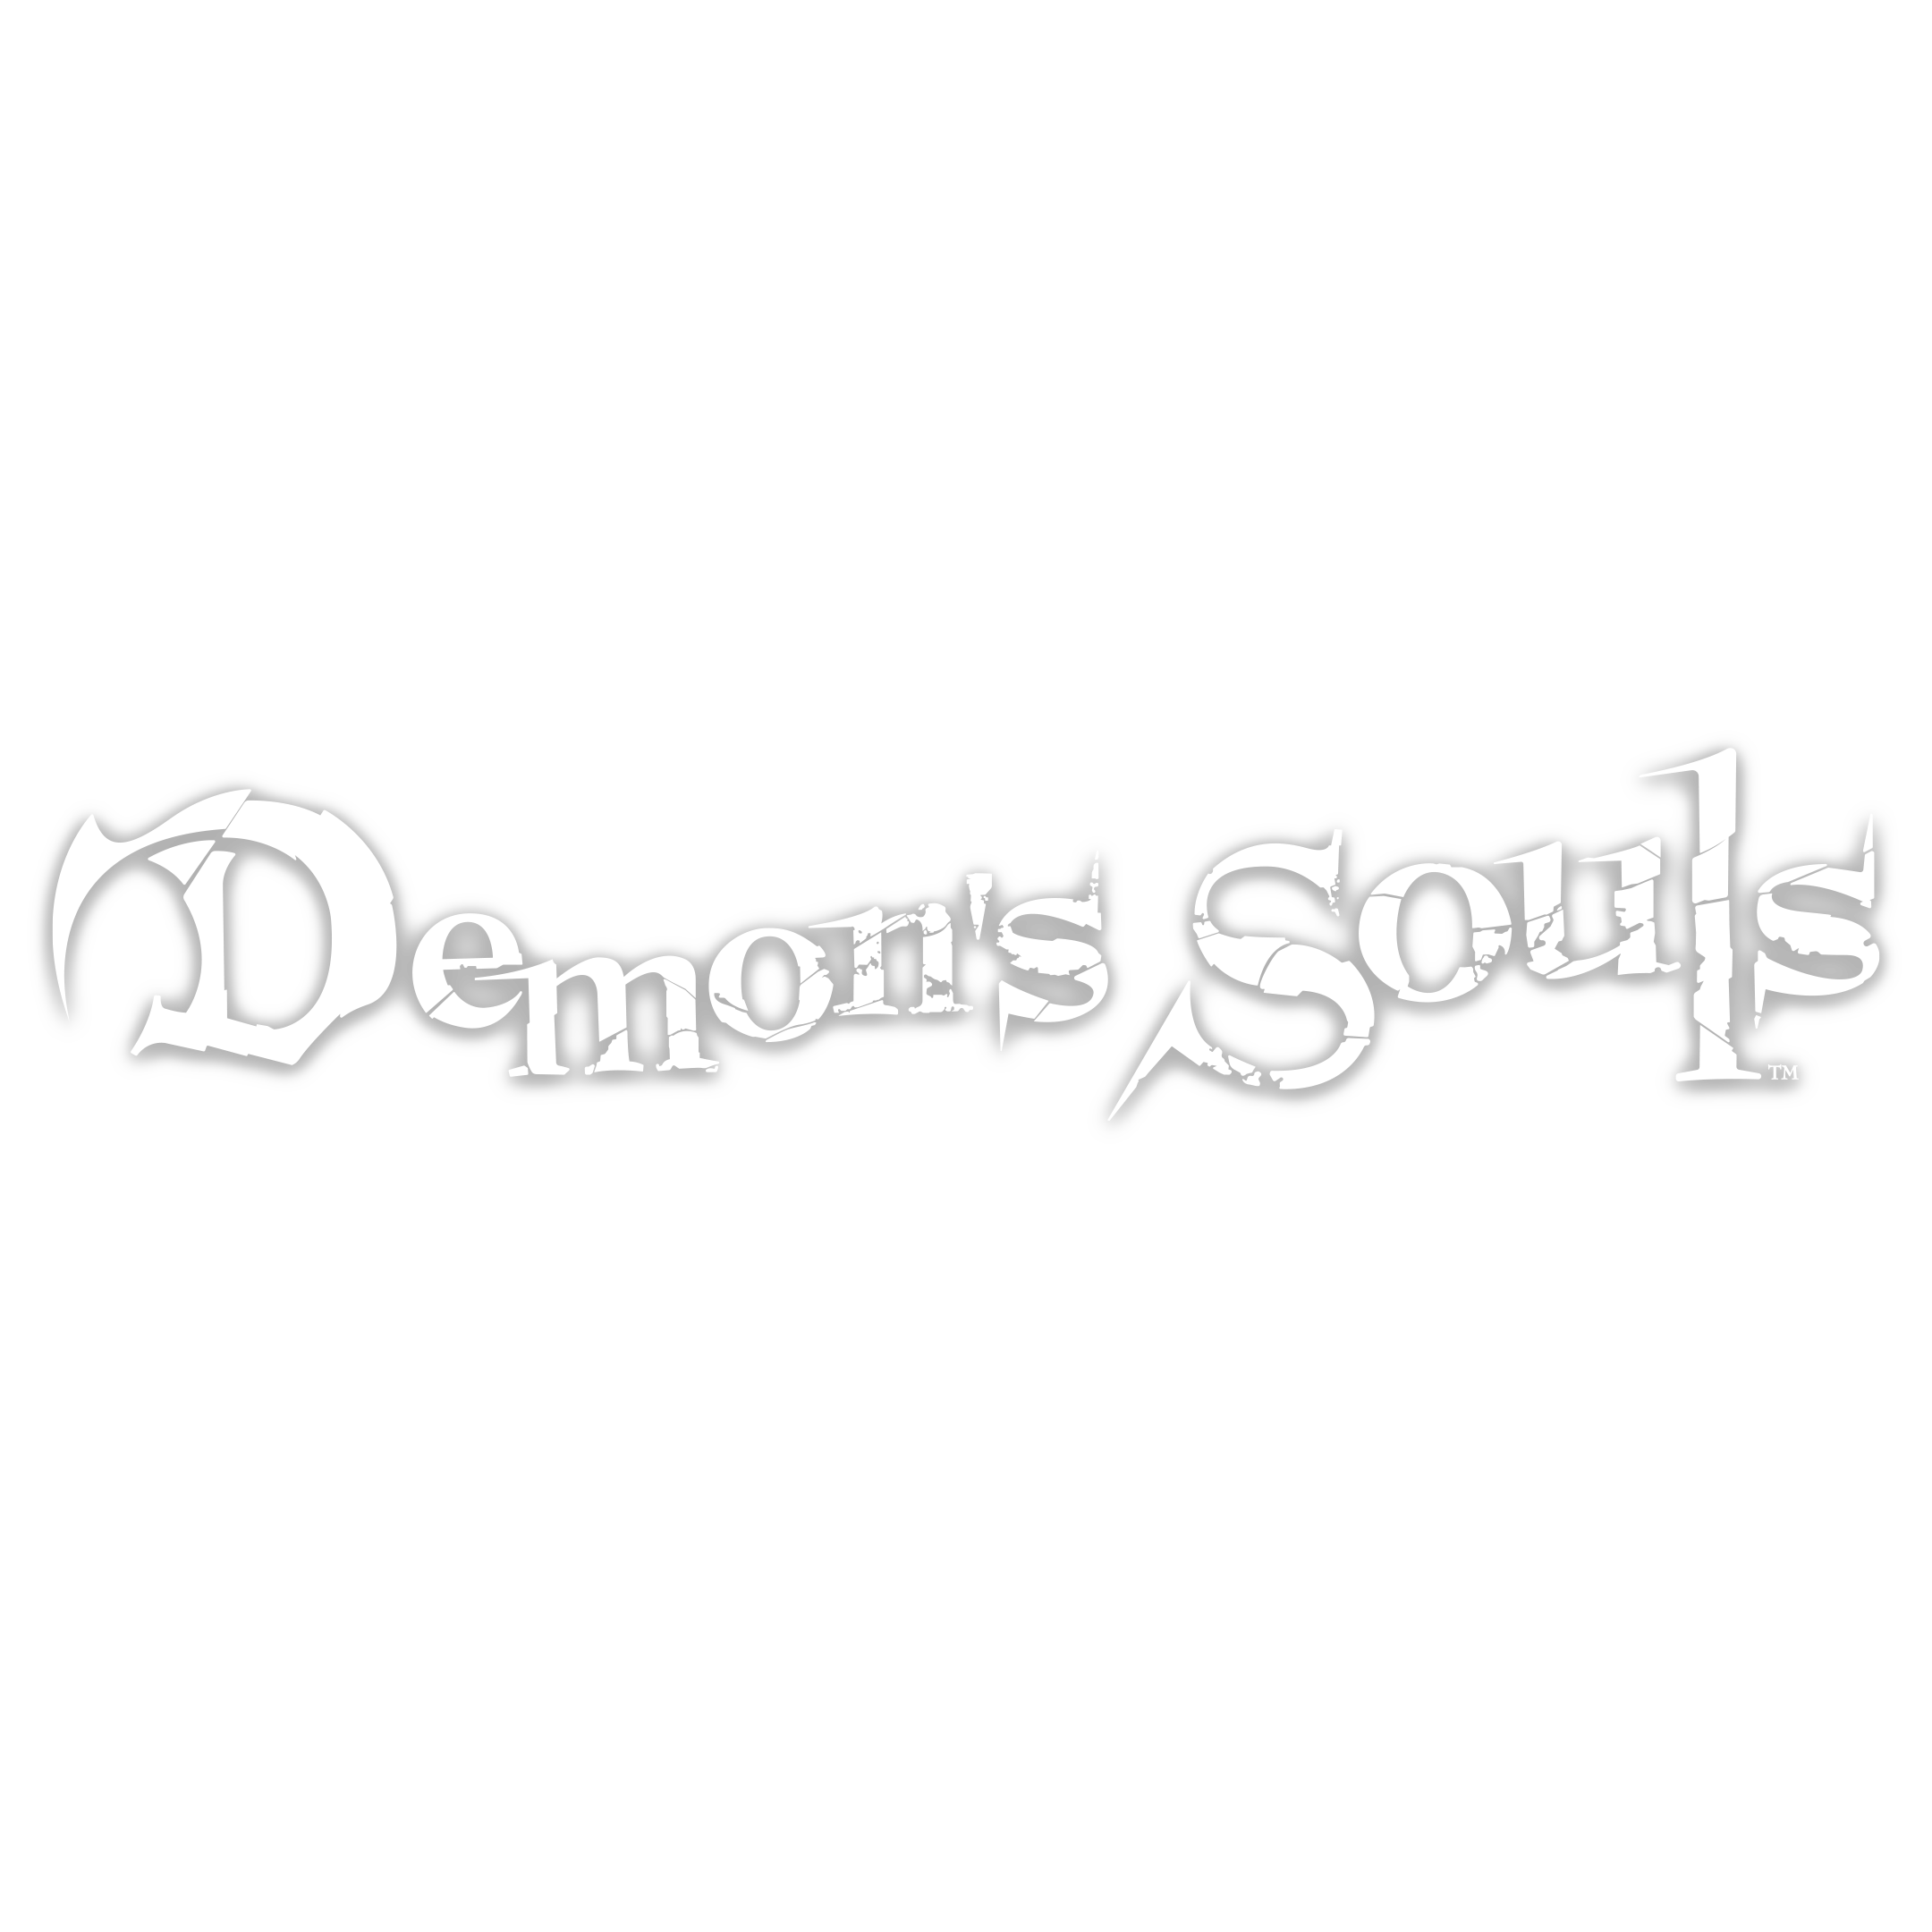 [HERO] Demons Souls - Logo